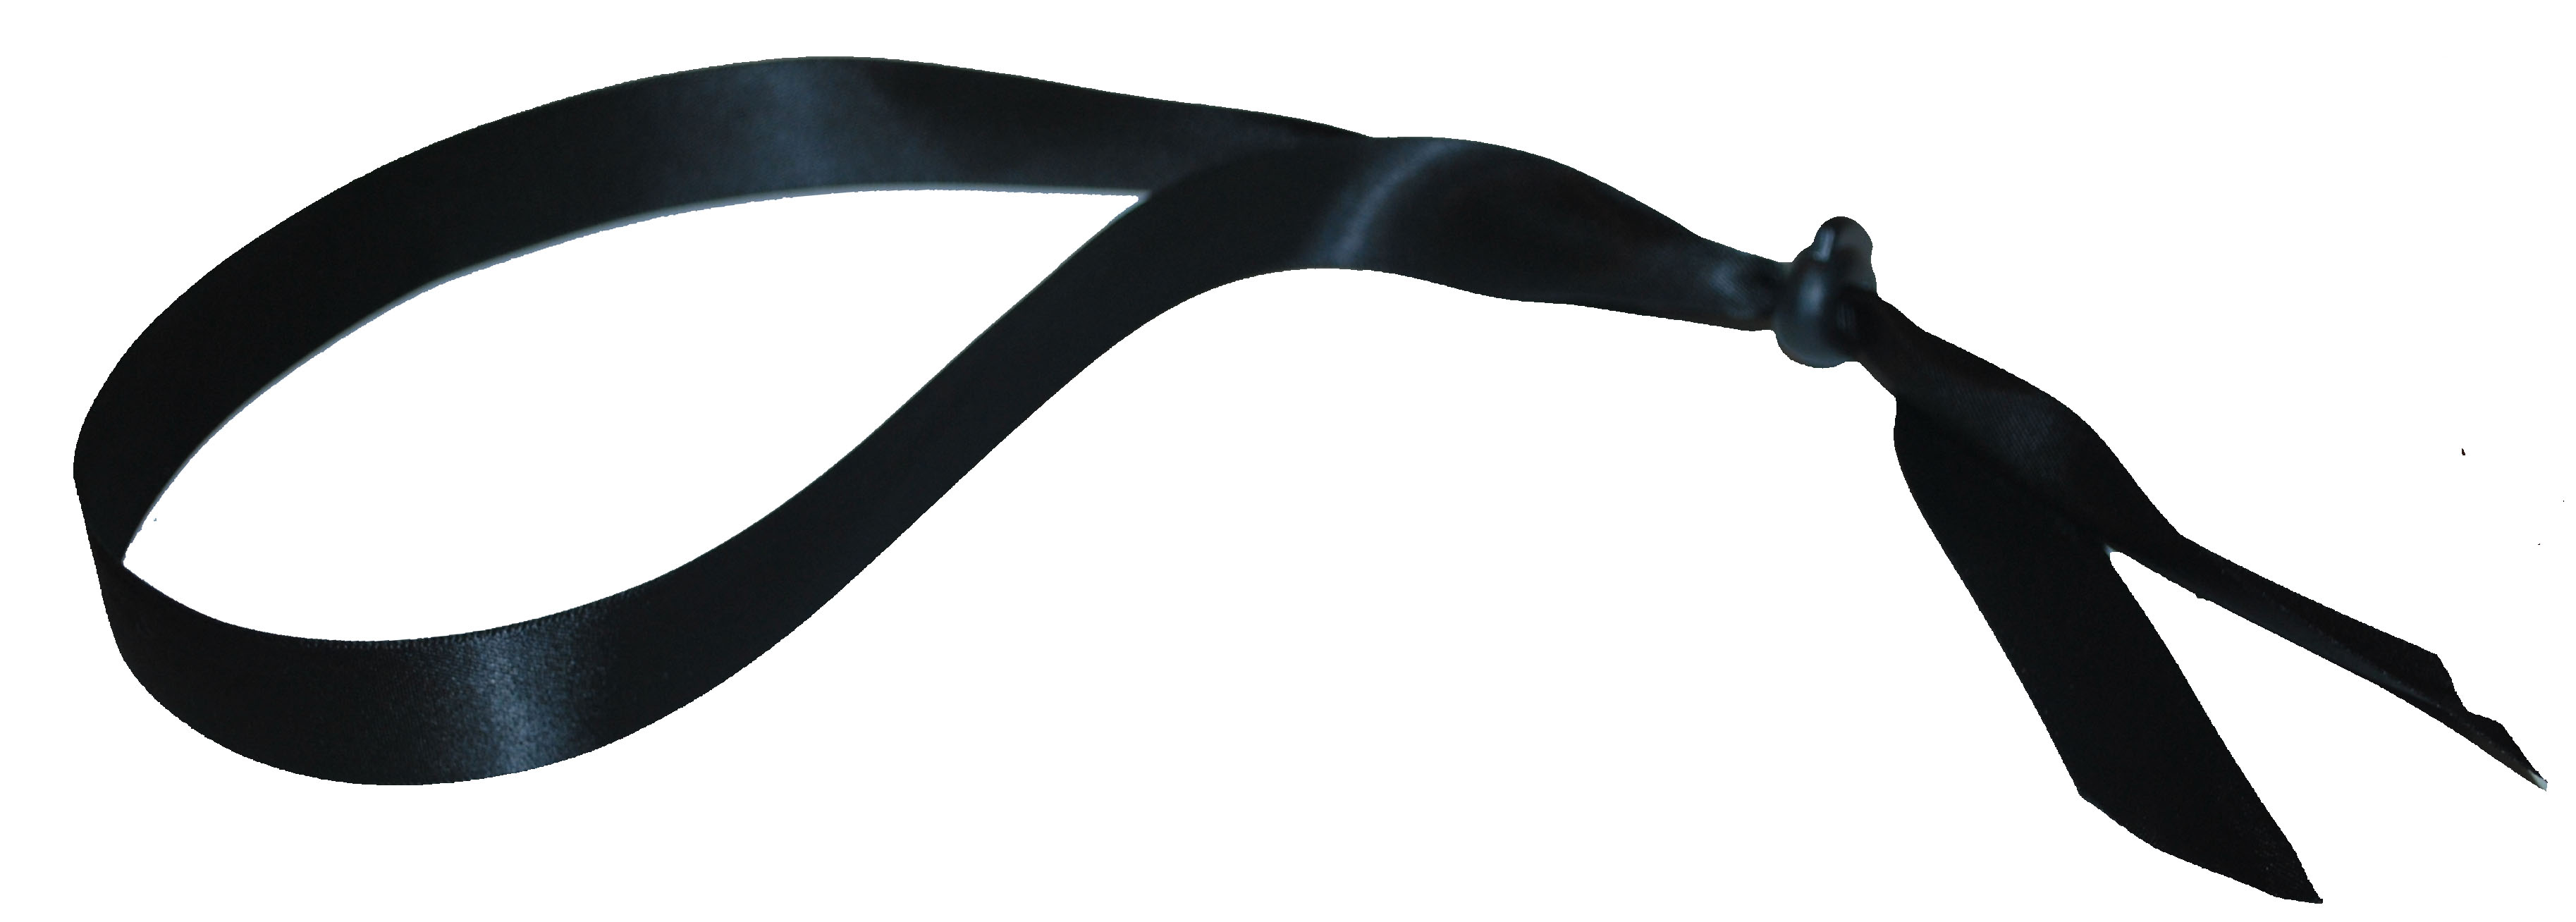 Adjustable Ribbon Headband – Dbl Faced Black Satin  6b41449e81c